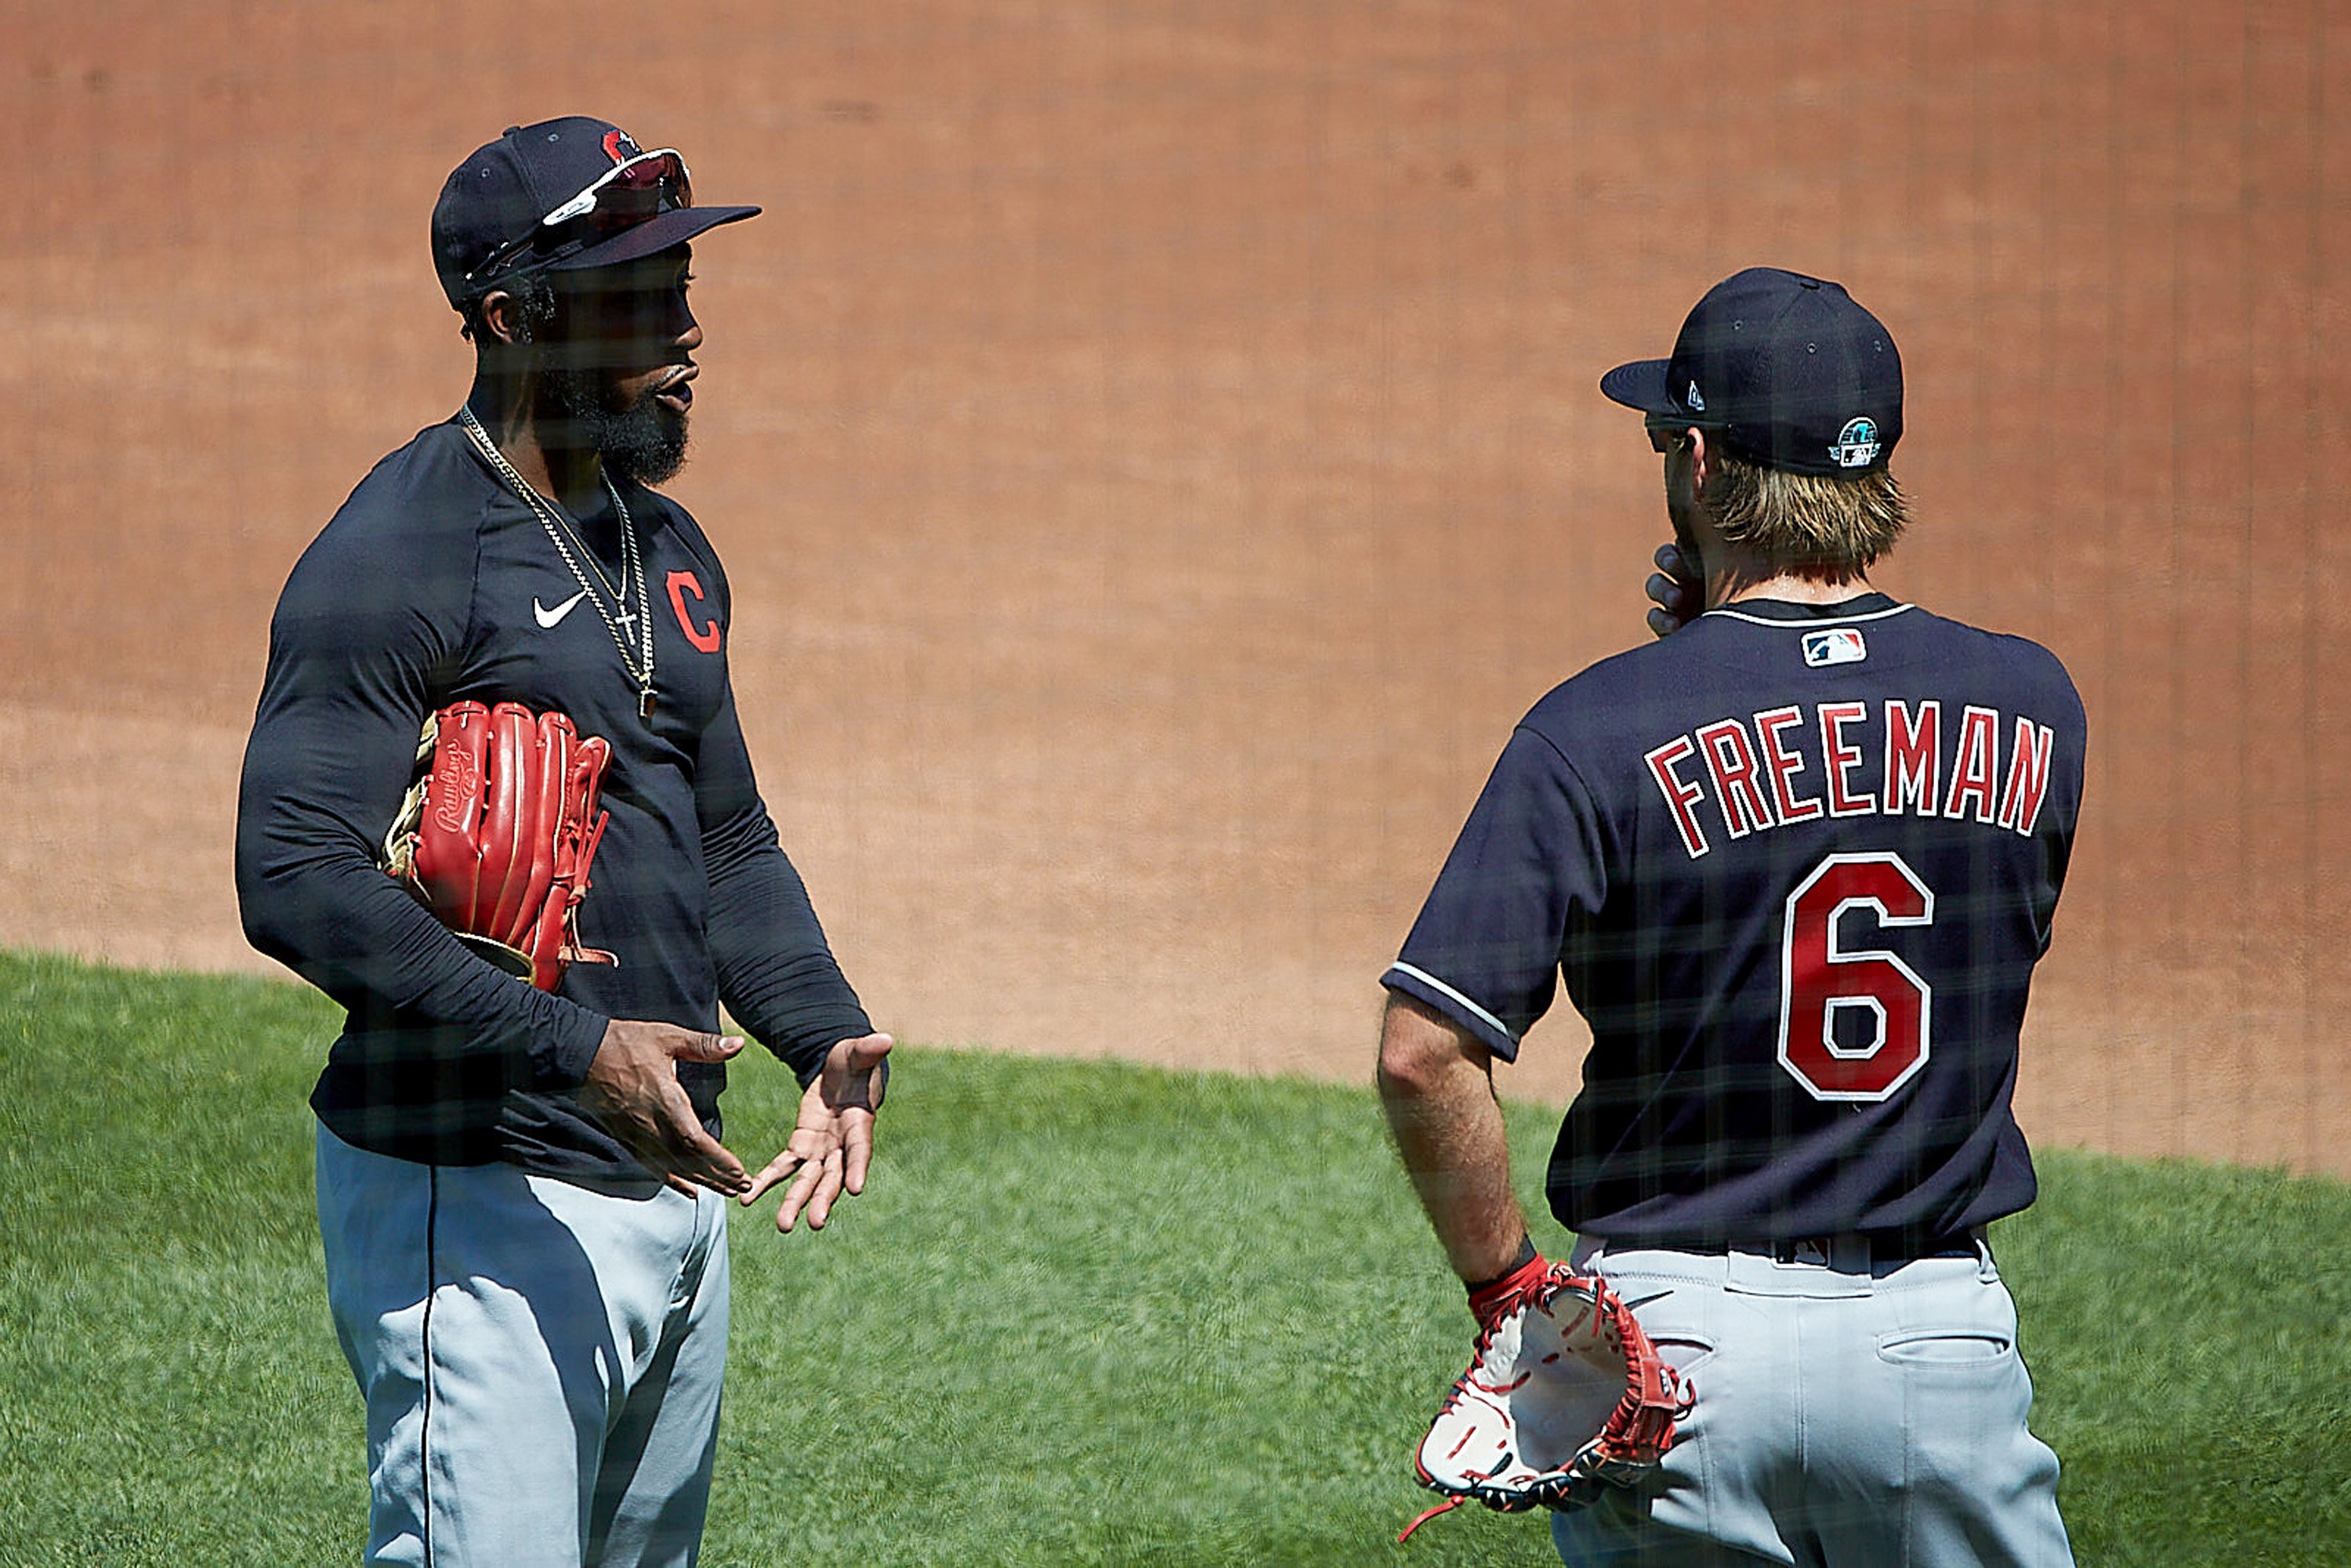 Cleveland Indians to determine 'best path forward' on name